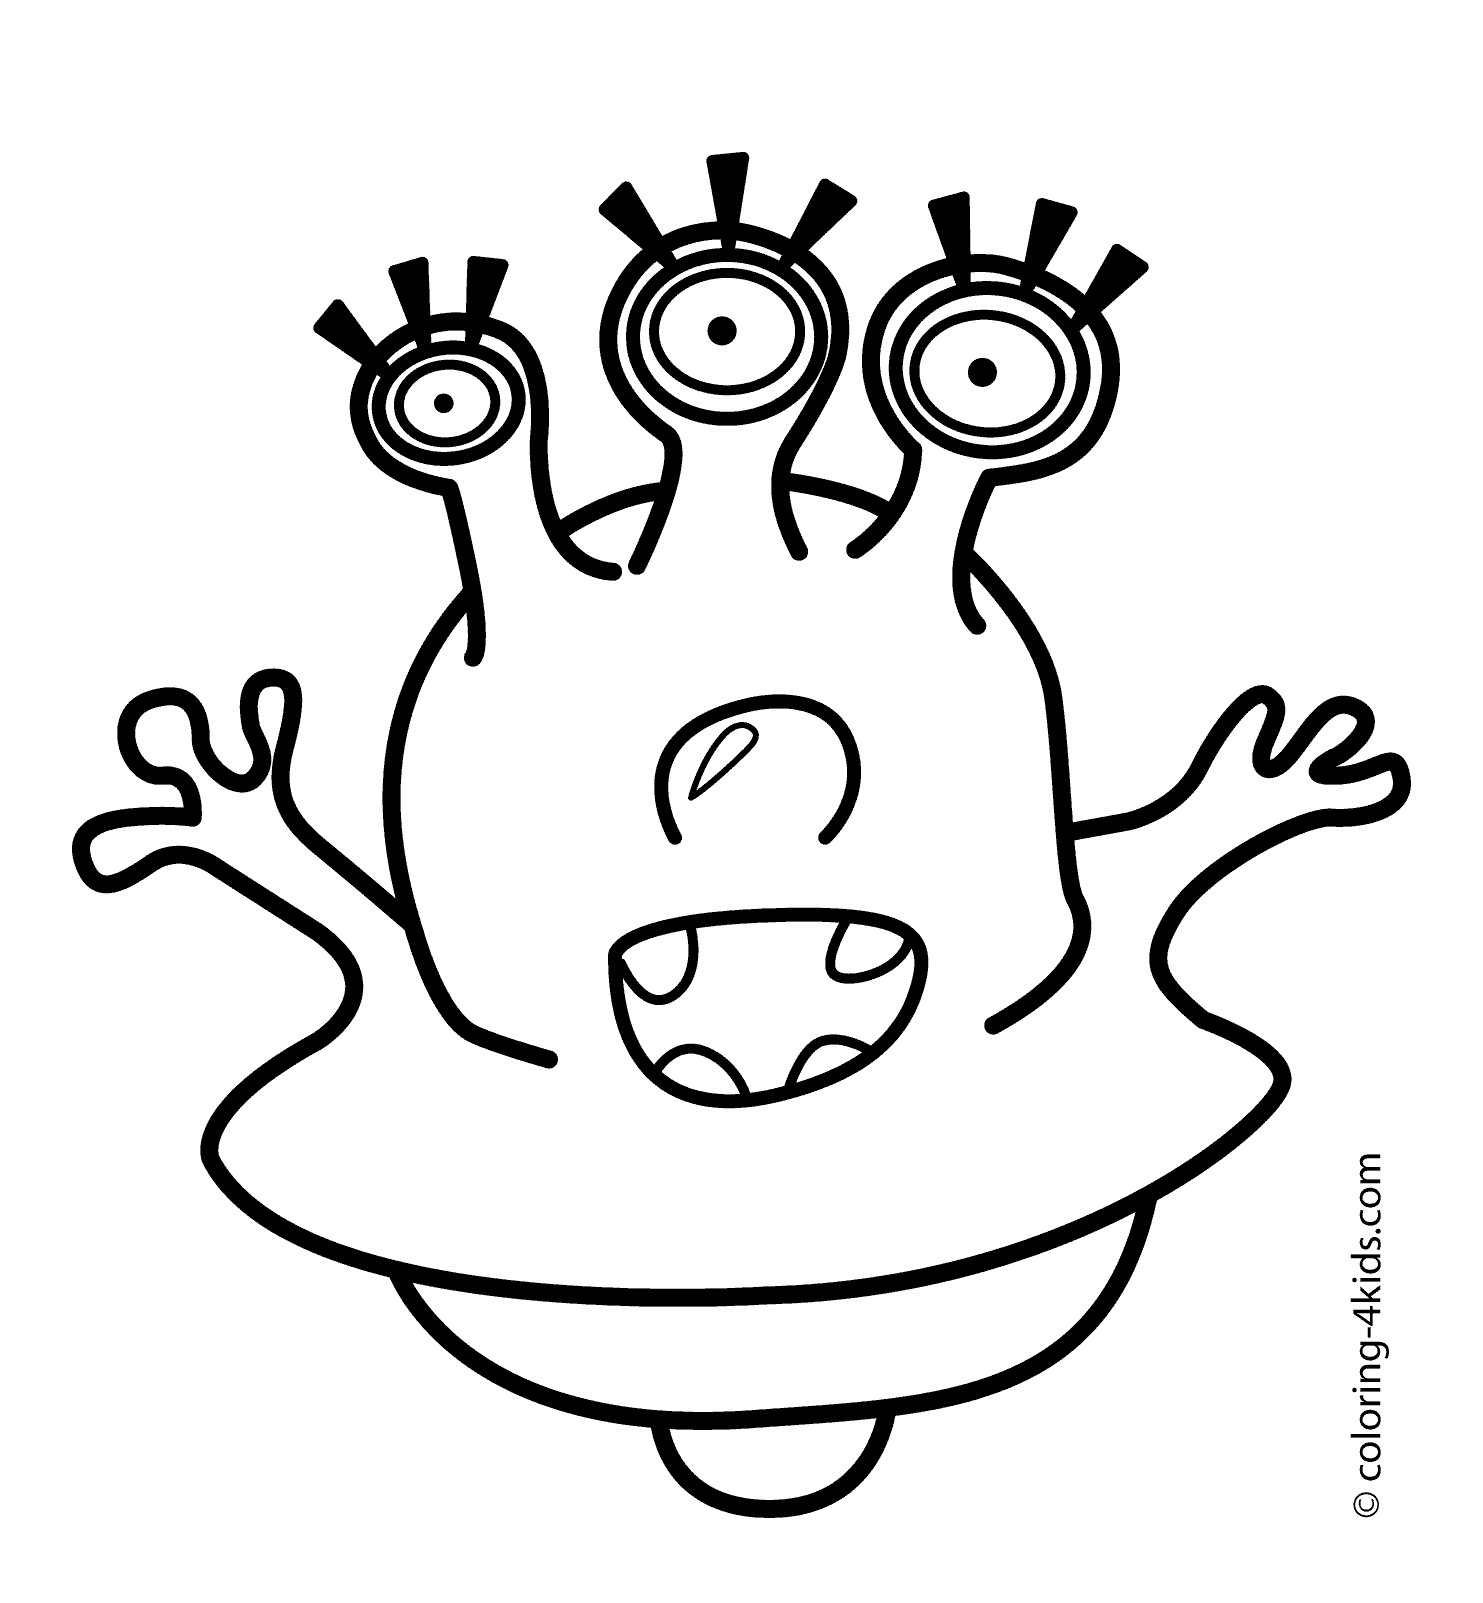 Scary Alien Coloring Pages At Getcolorings